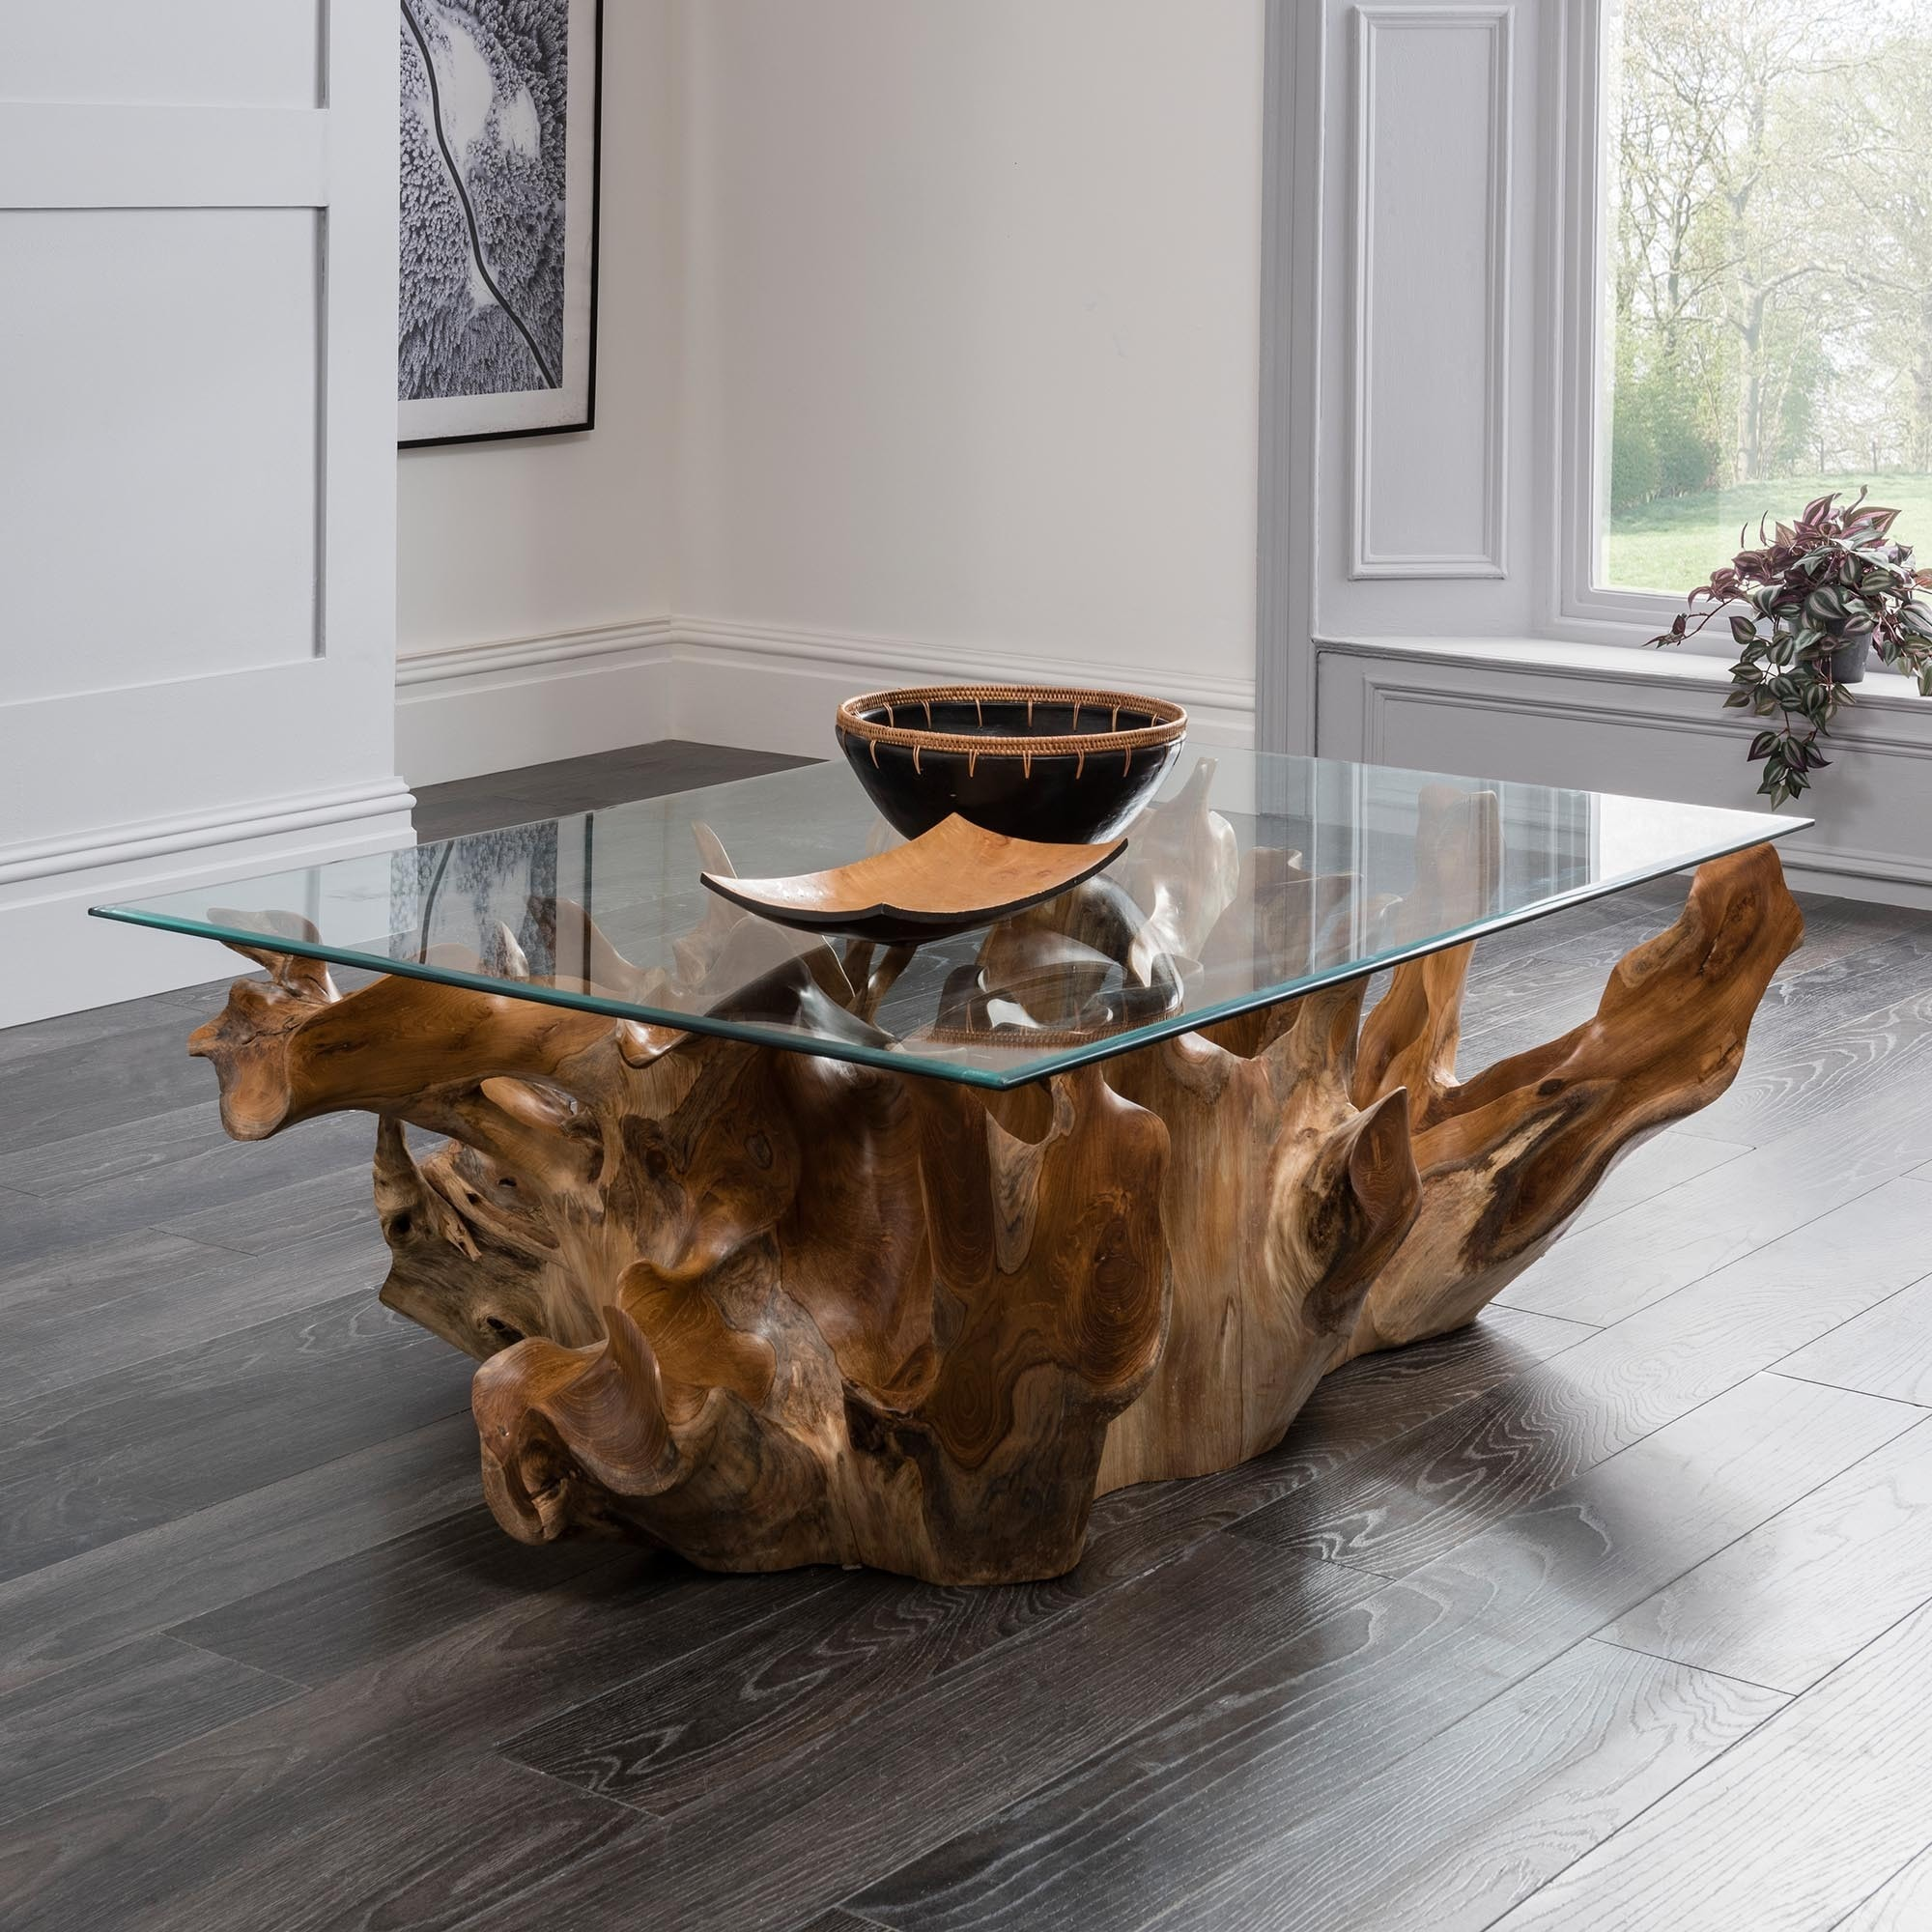 Teak Root Coffee Table | Teak Root Lounge Furniture Online Now